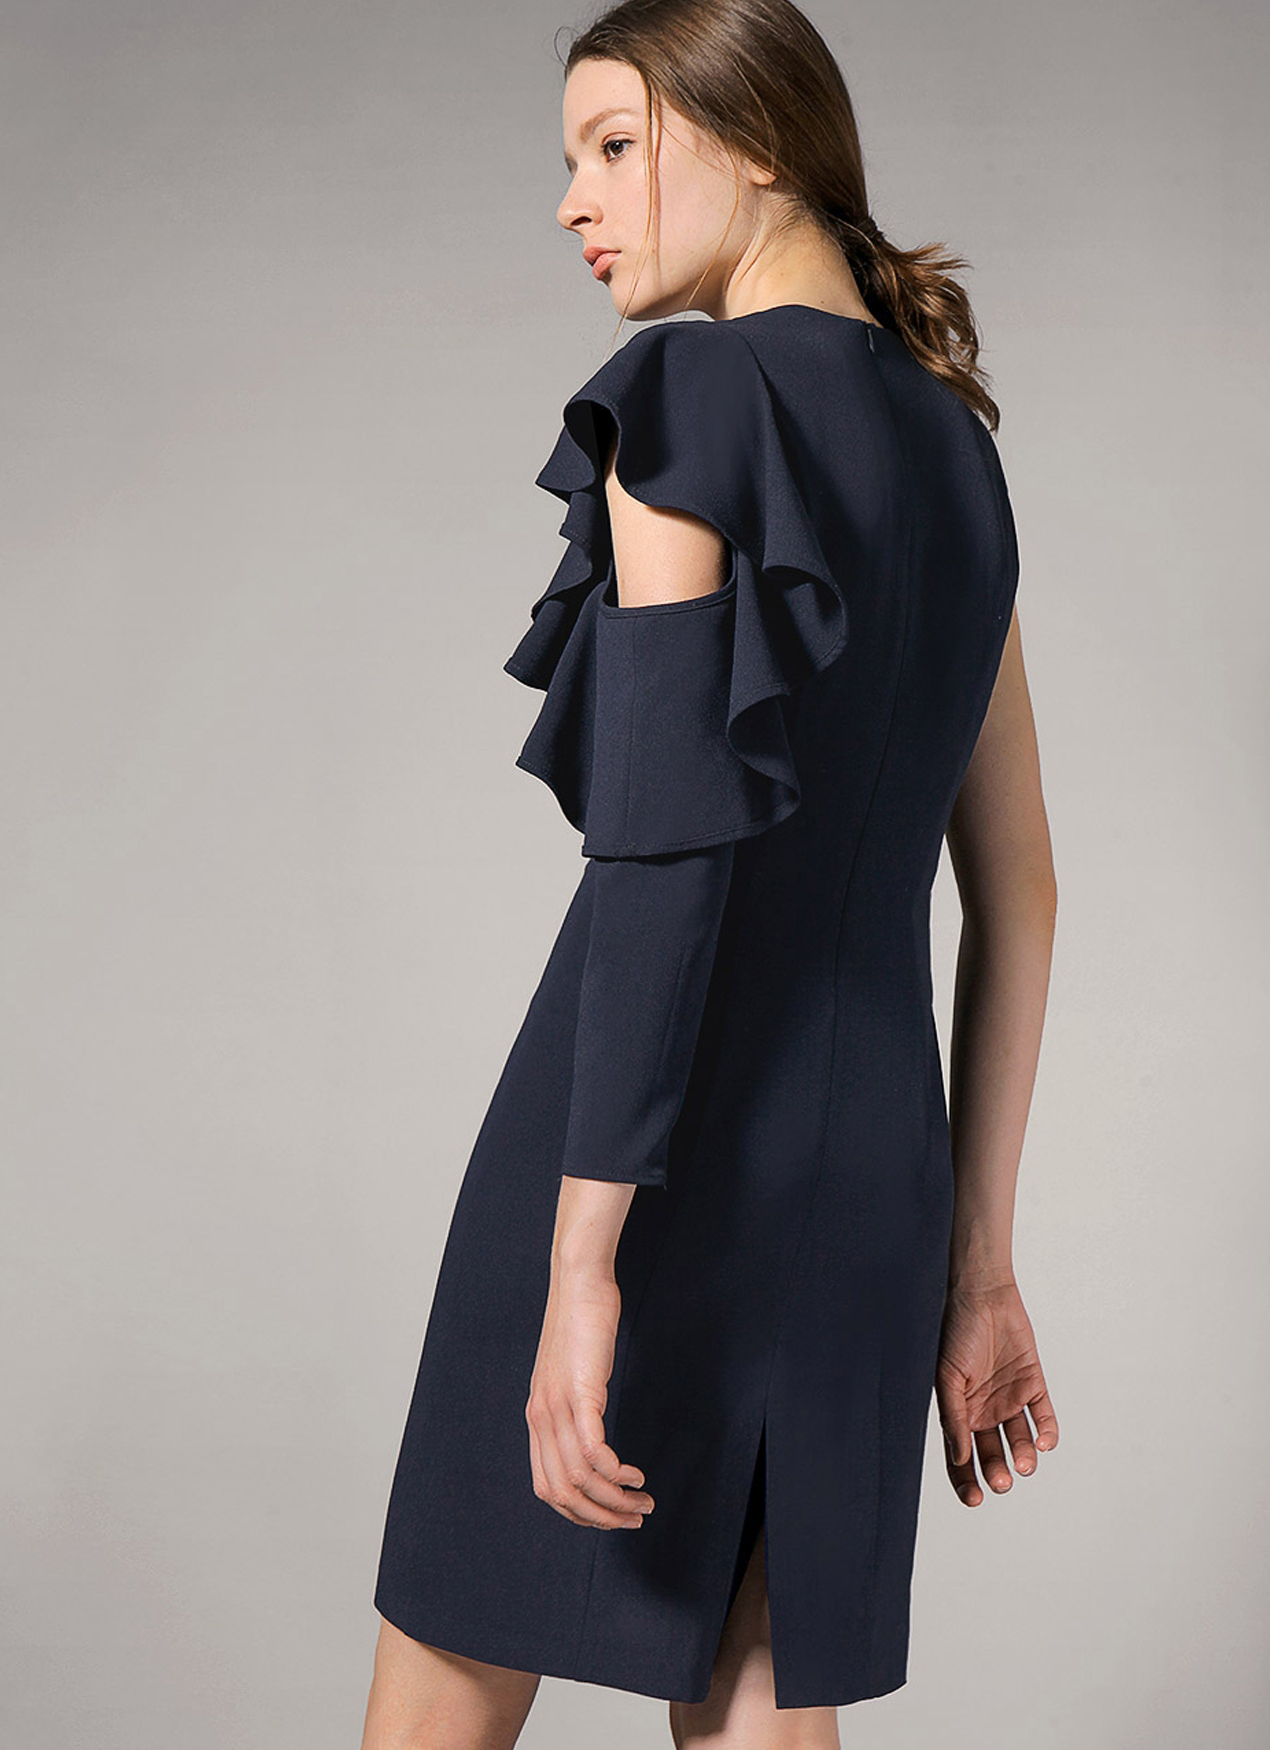 Saturday Club Navy One-shouldered Ruffle Midi Dress